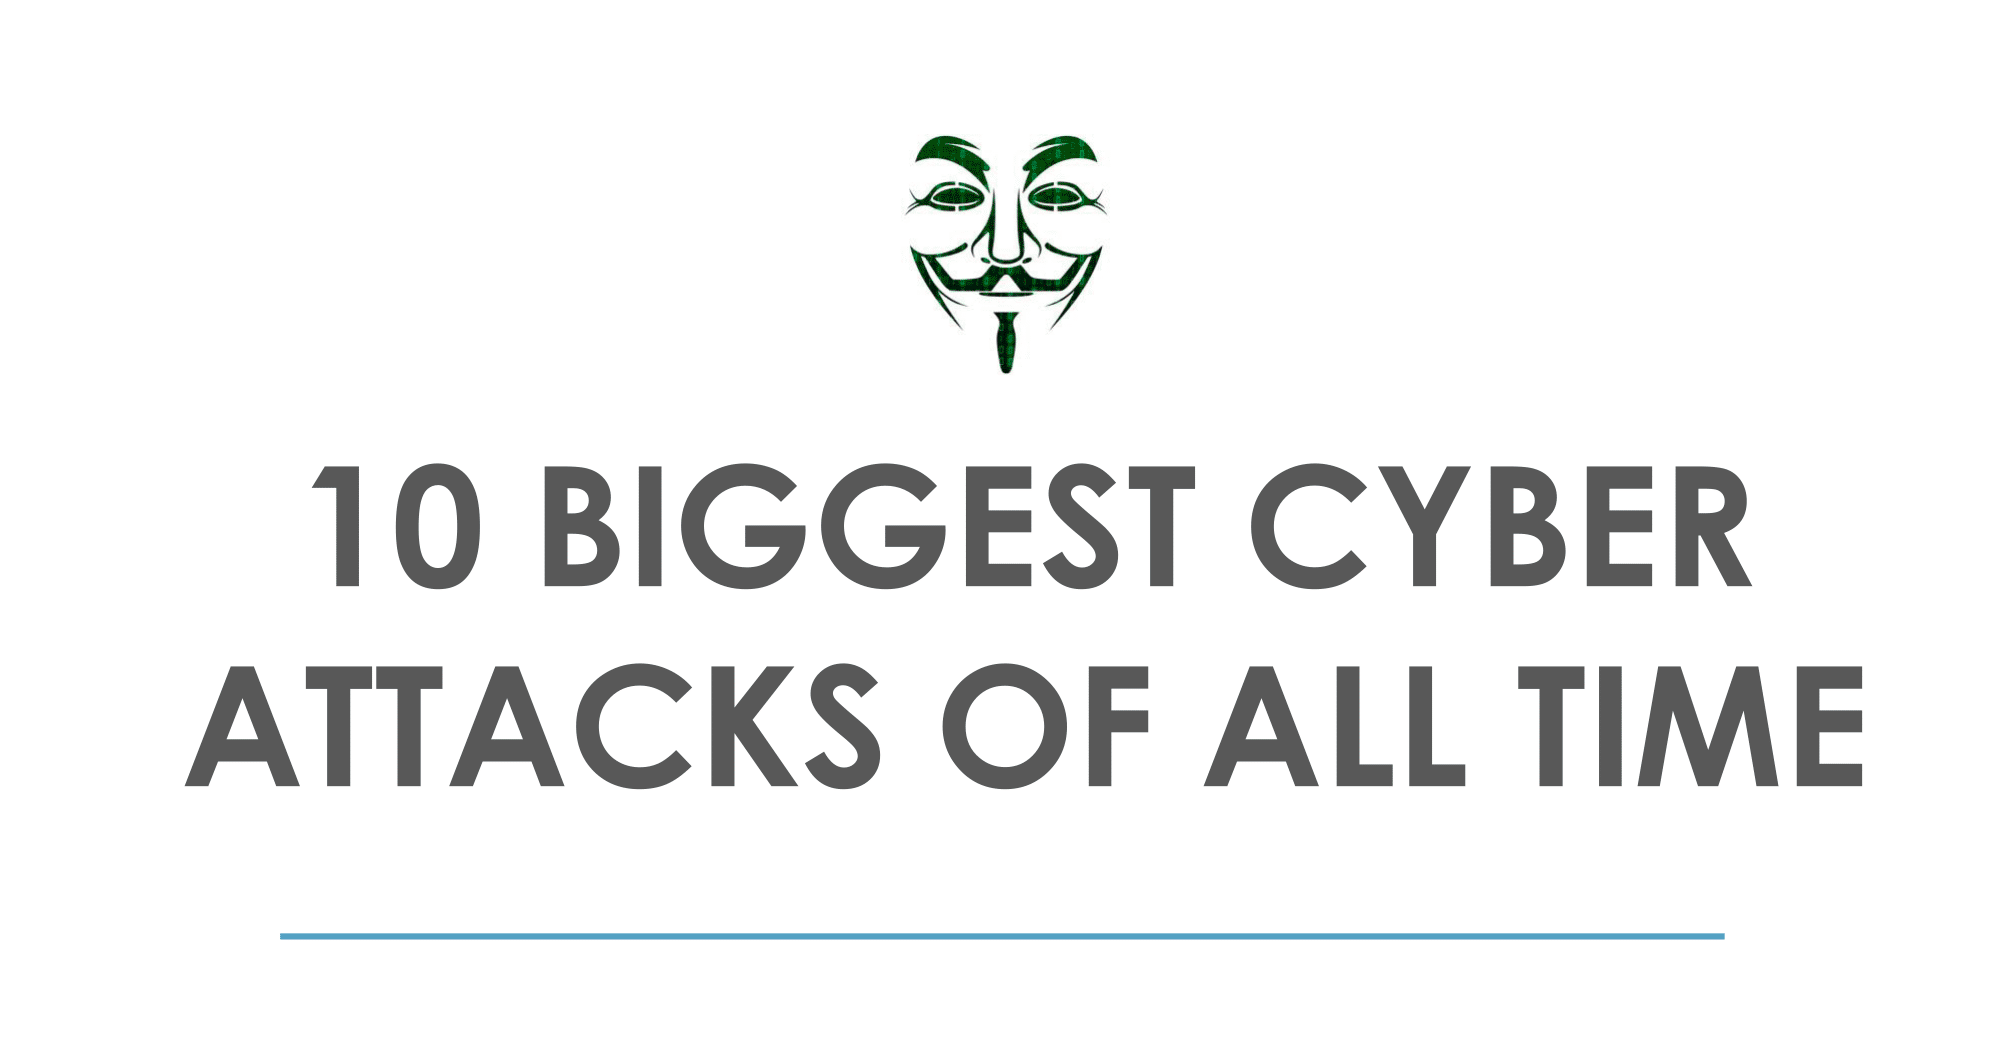 10 Biggest Cyber Attacks Of All Time